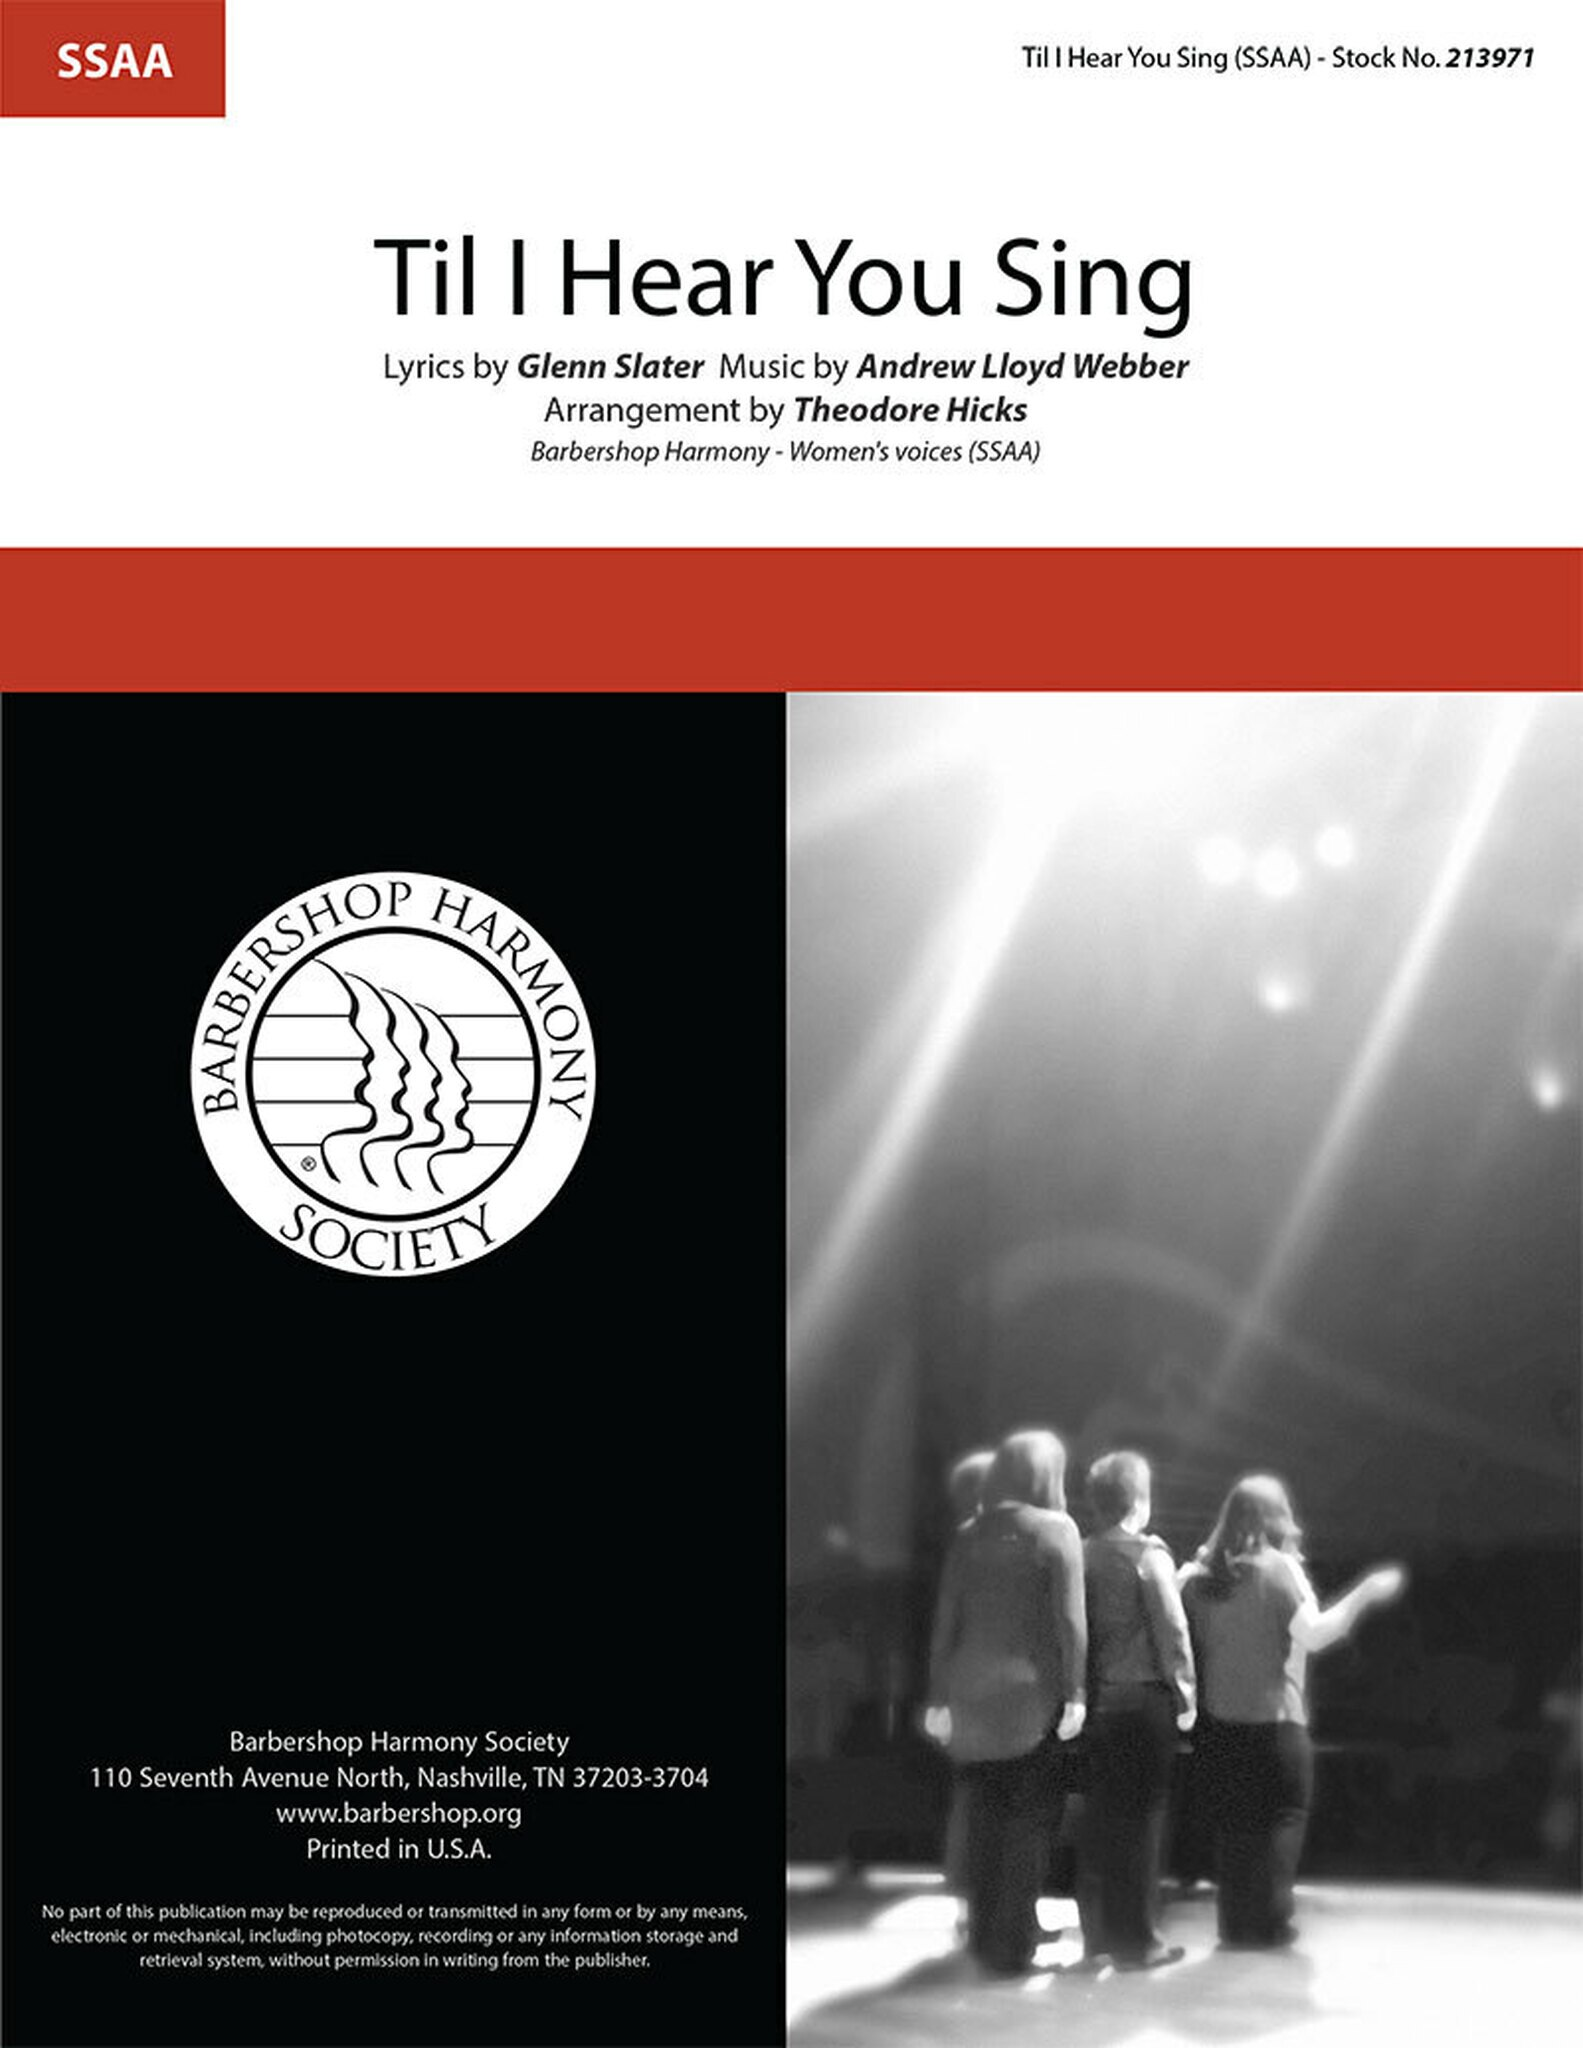 'Til I Hear You Sing : SSAA : Theo Hicks : Andrew Lloyd Webber : Love Never Dies : Sheet Music : 00363317